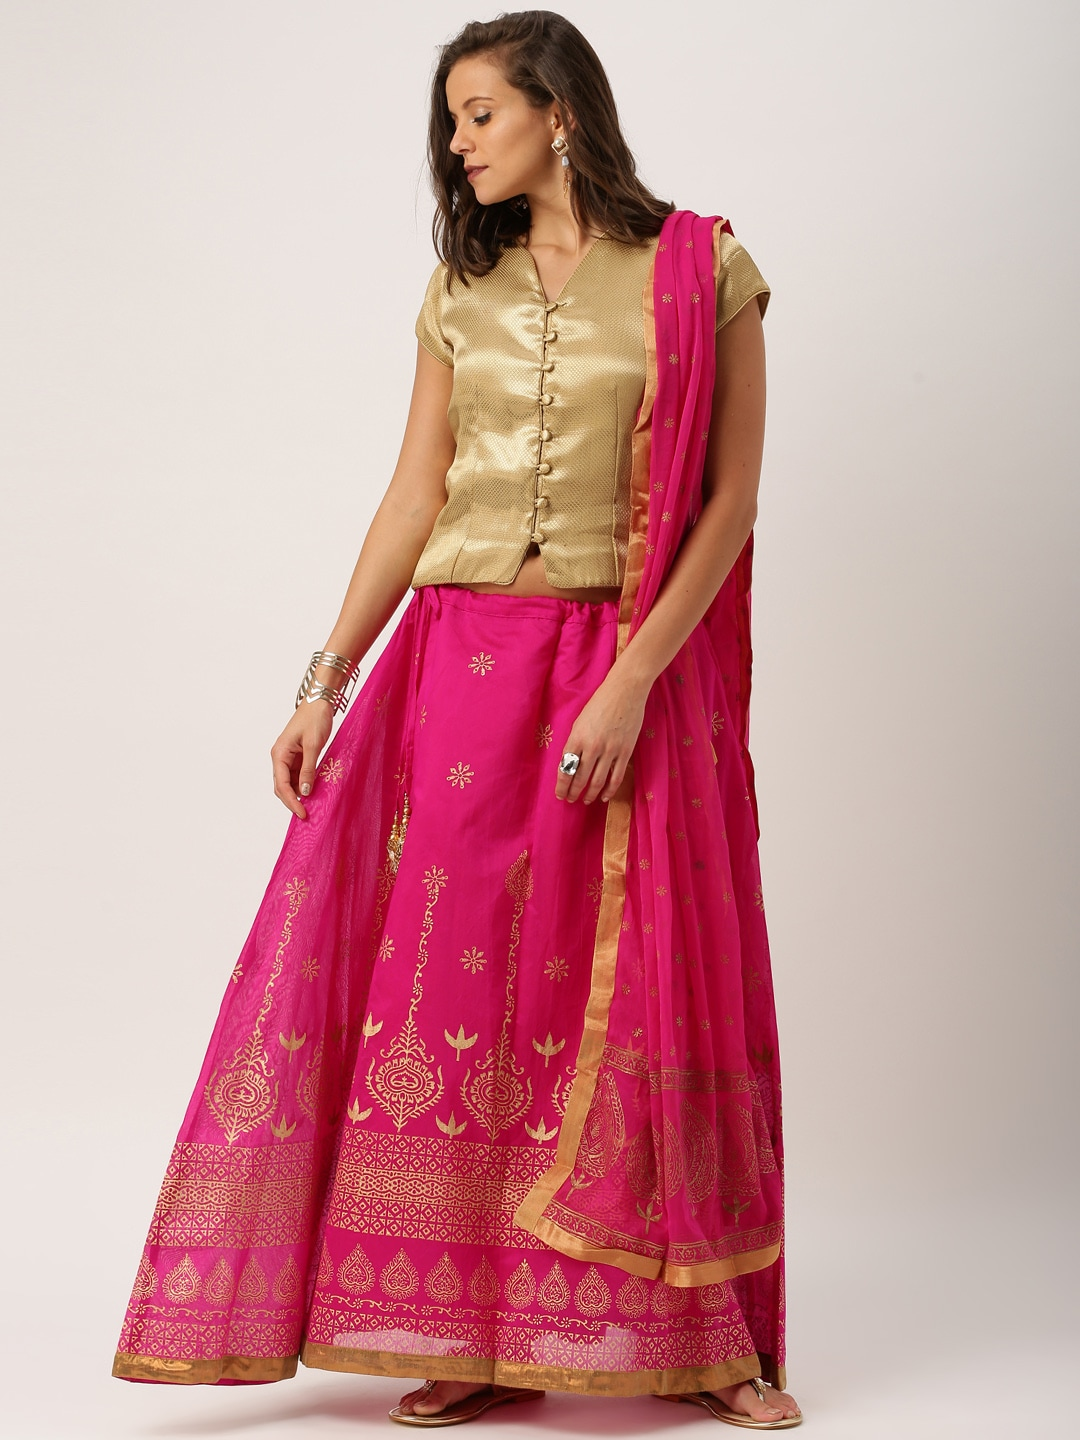 IMARA Gold-Toned & Pink Lehenga Choli with Dupatta image